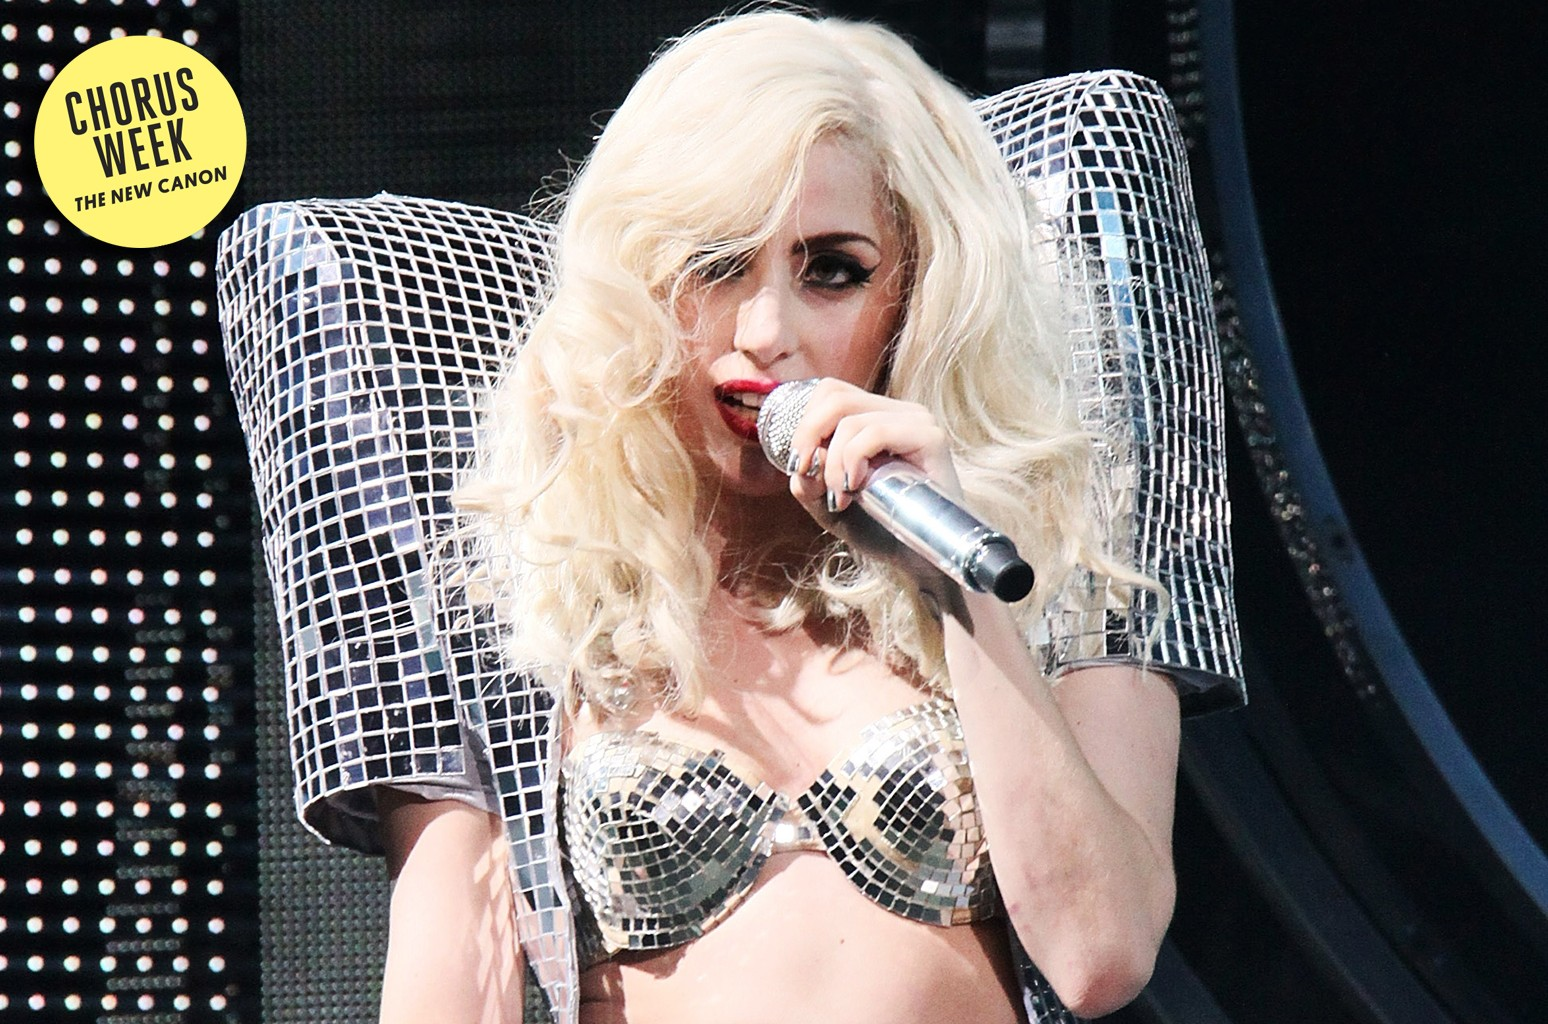 Lady Gaga performs on stage at Nokia Theatre L.A. Live on Dec. 22, 2009 in Los Angeles.